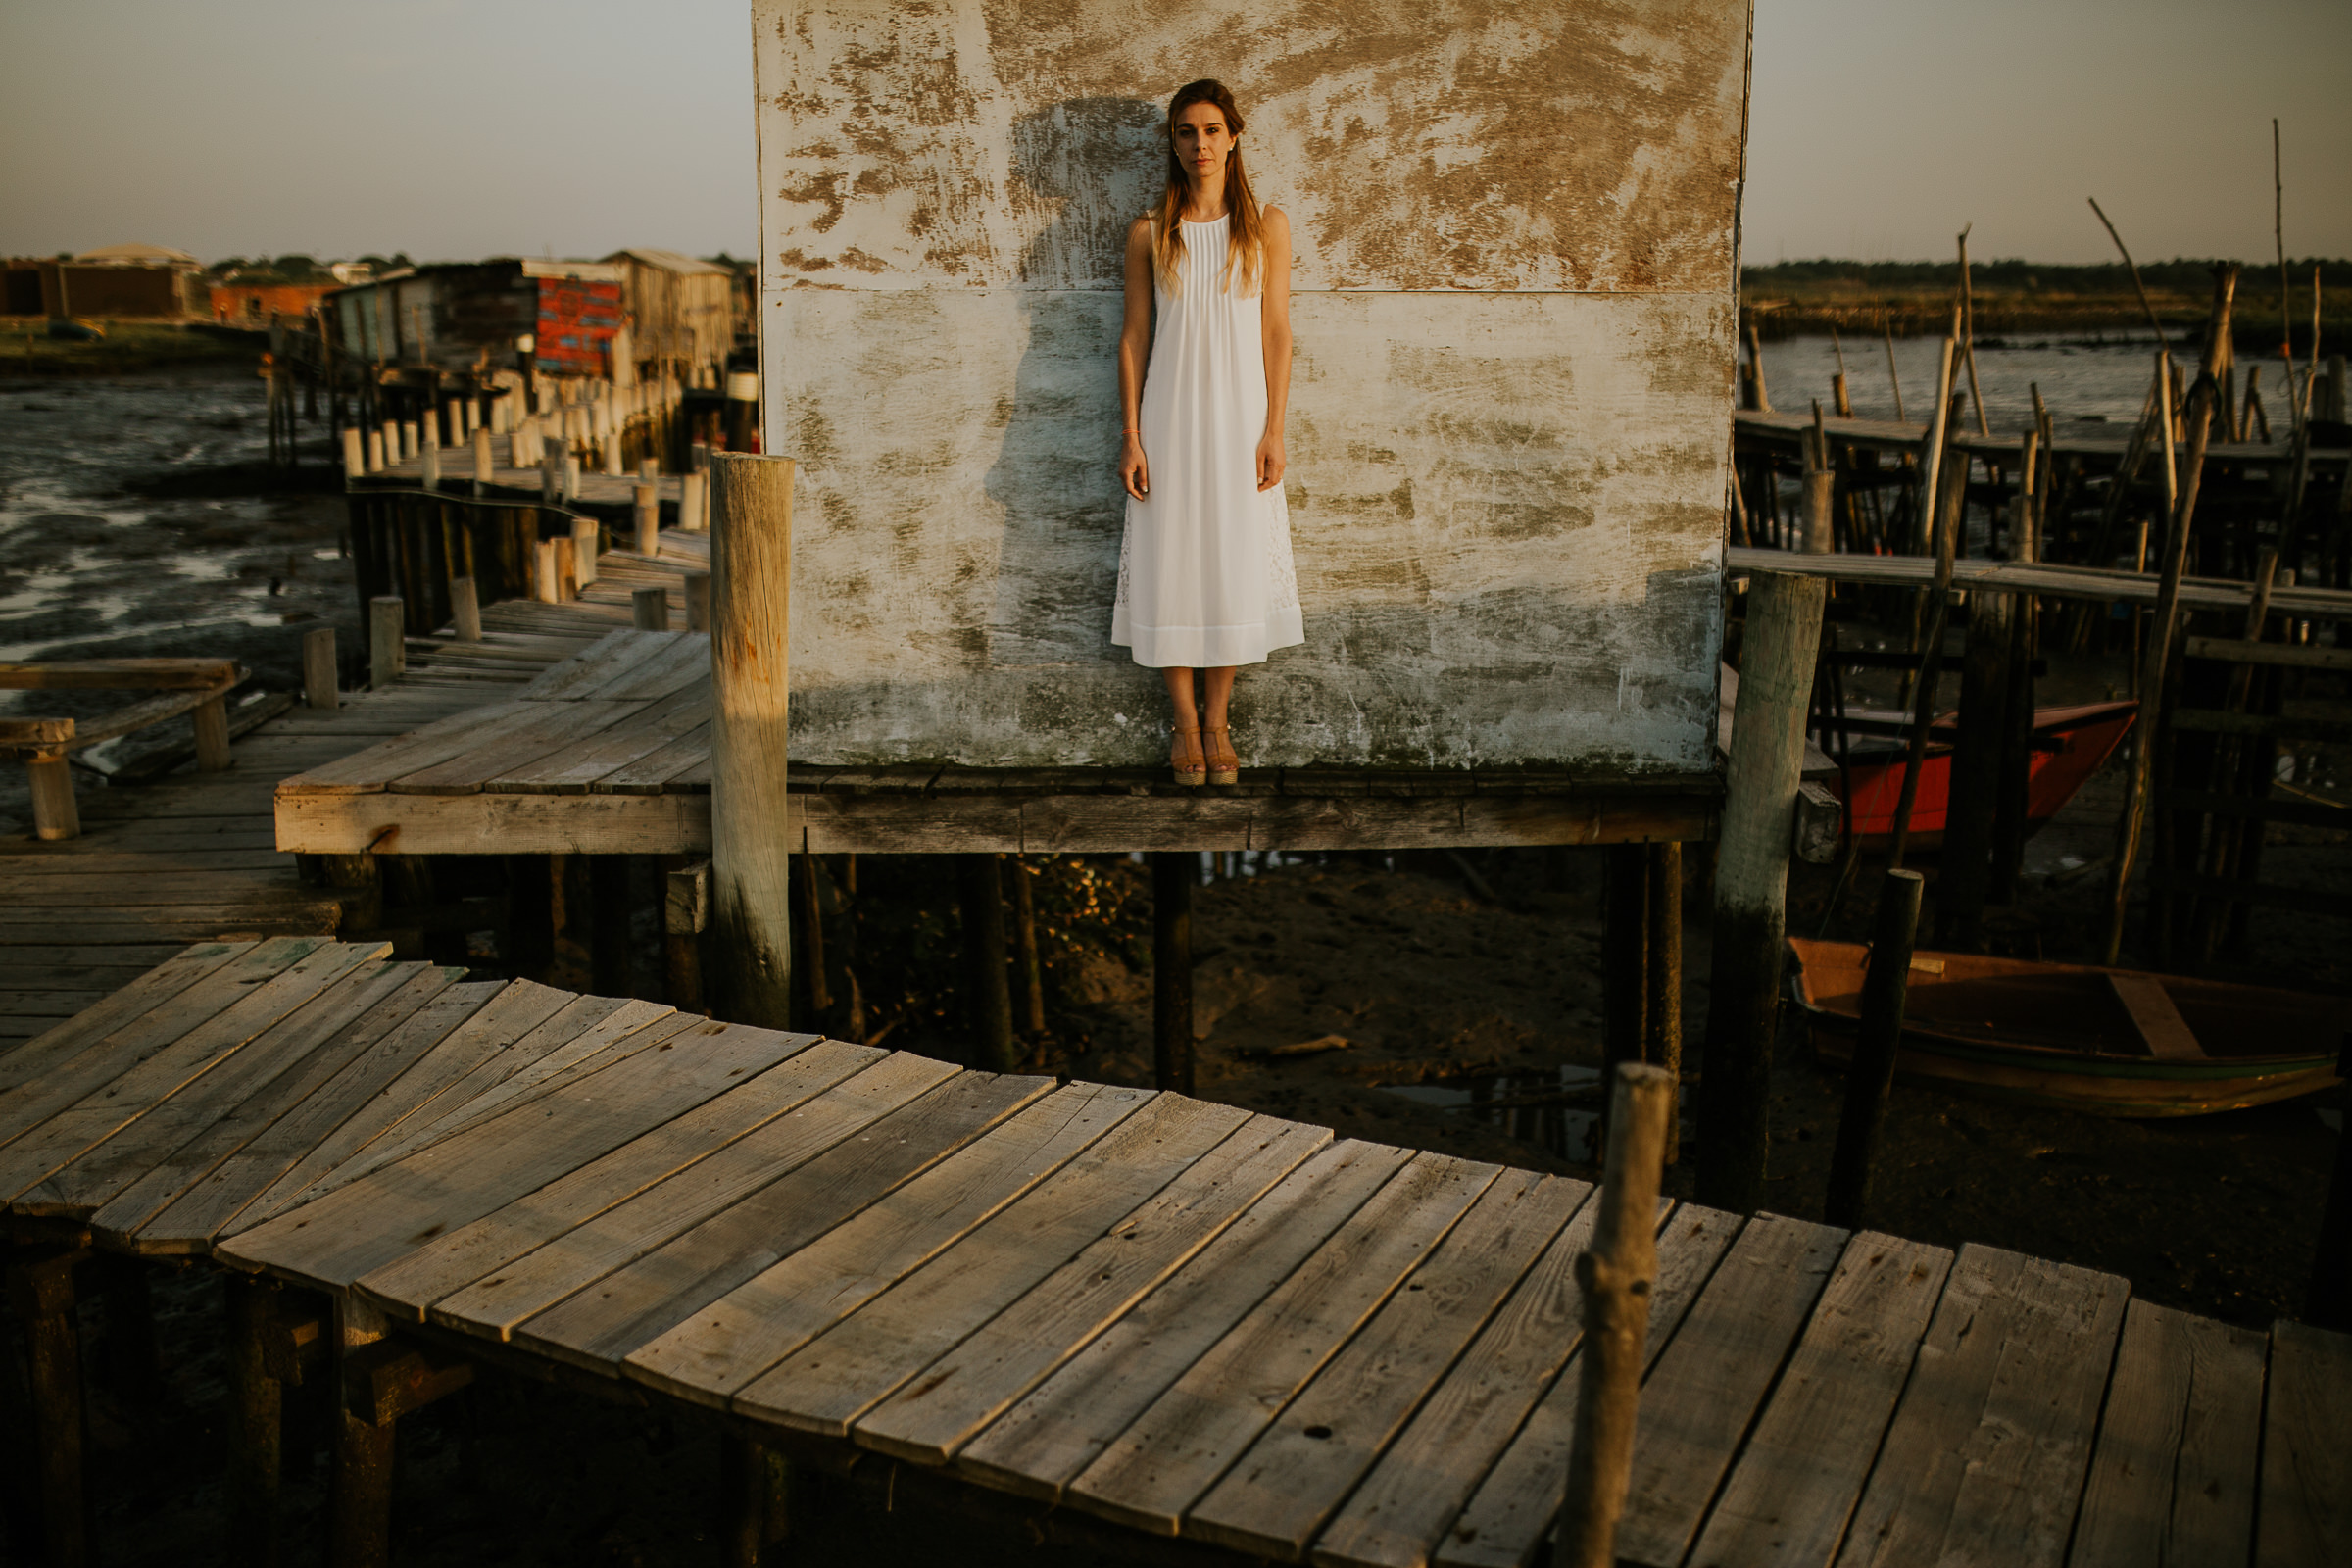 Centered Portrait of a woman dressing with a white dress on wooden dock during sunset